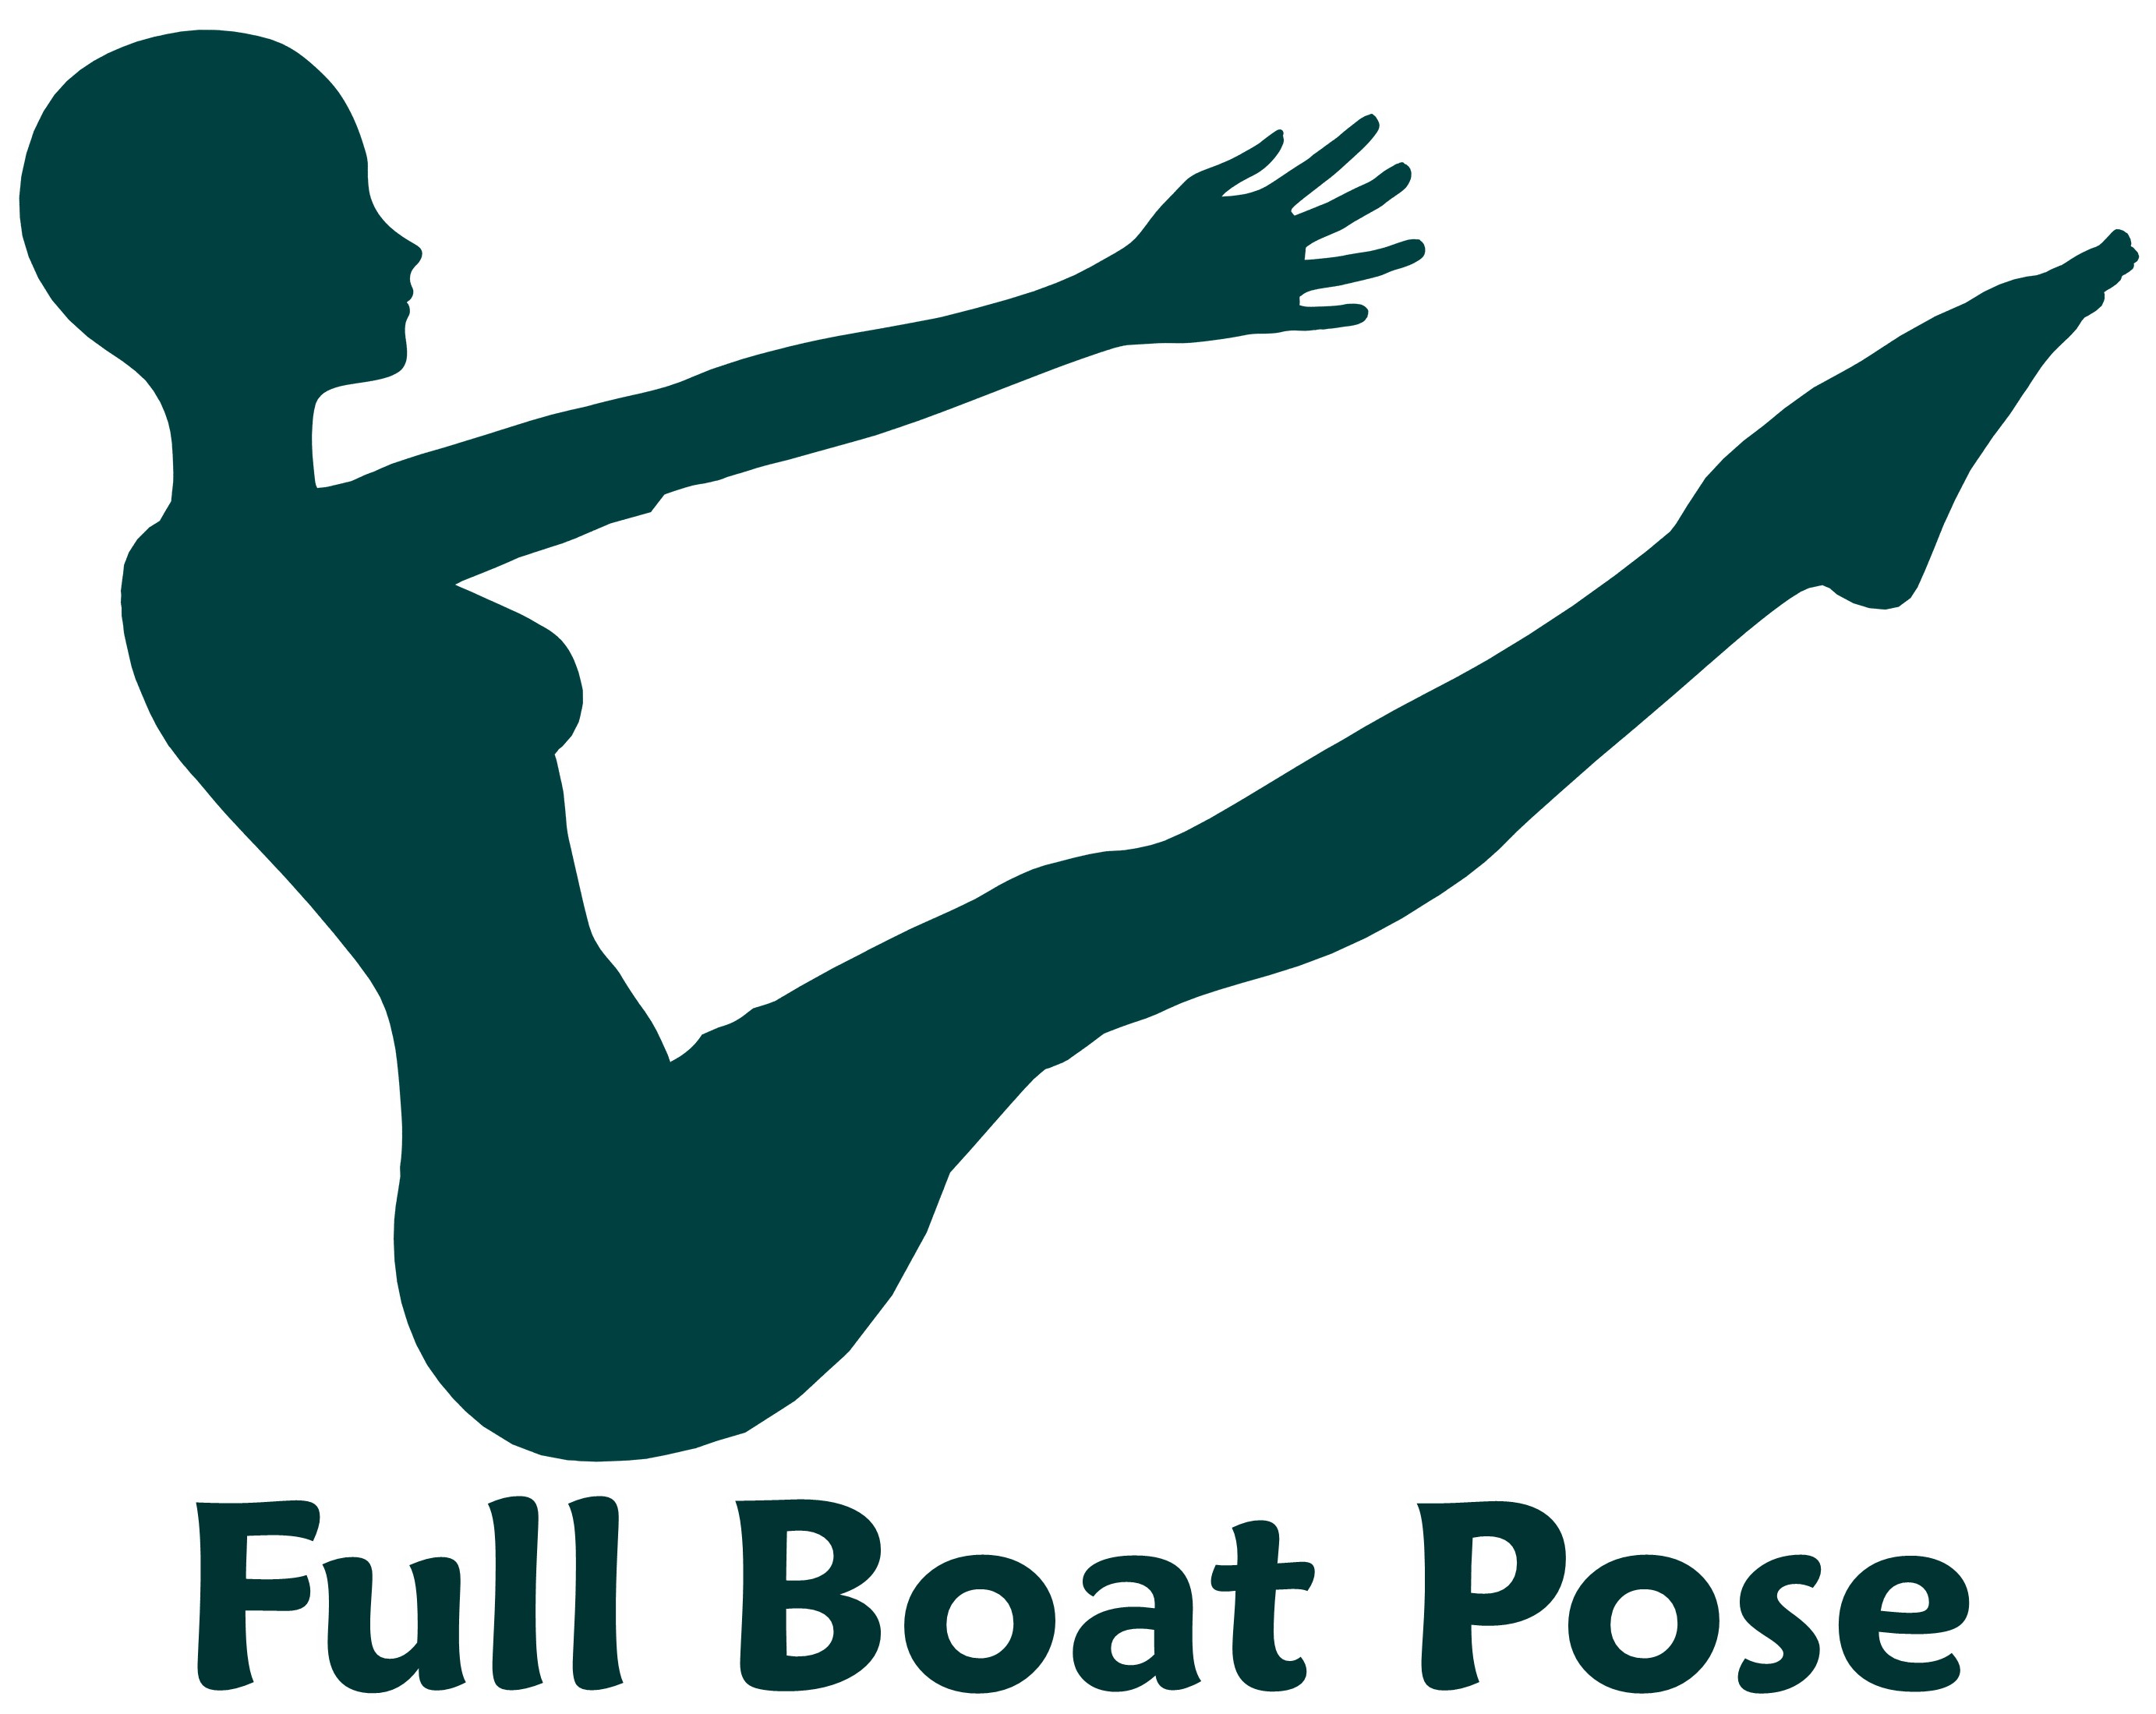 Full Boat Pose, Body, Cartoon, Clipart, Exercise, HQ Photo